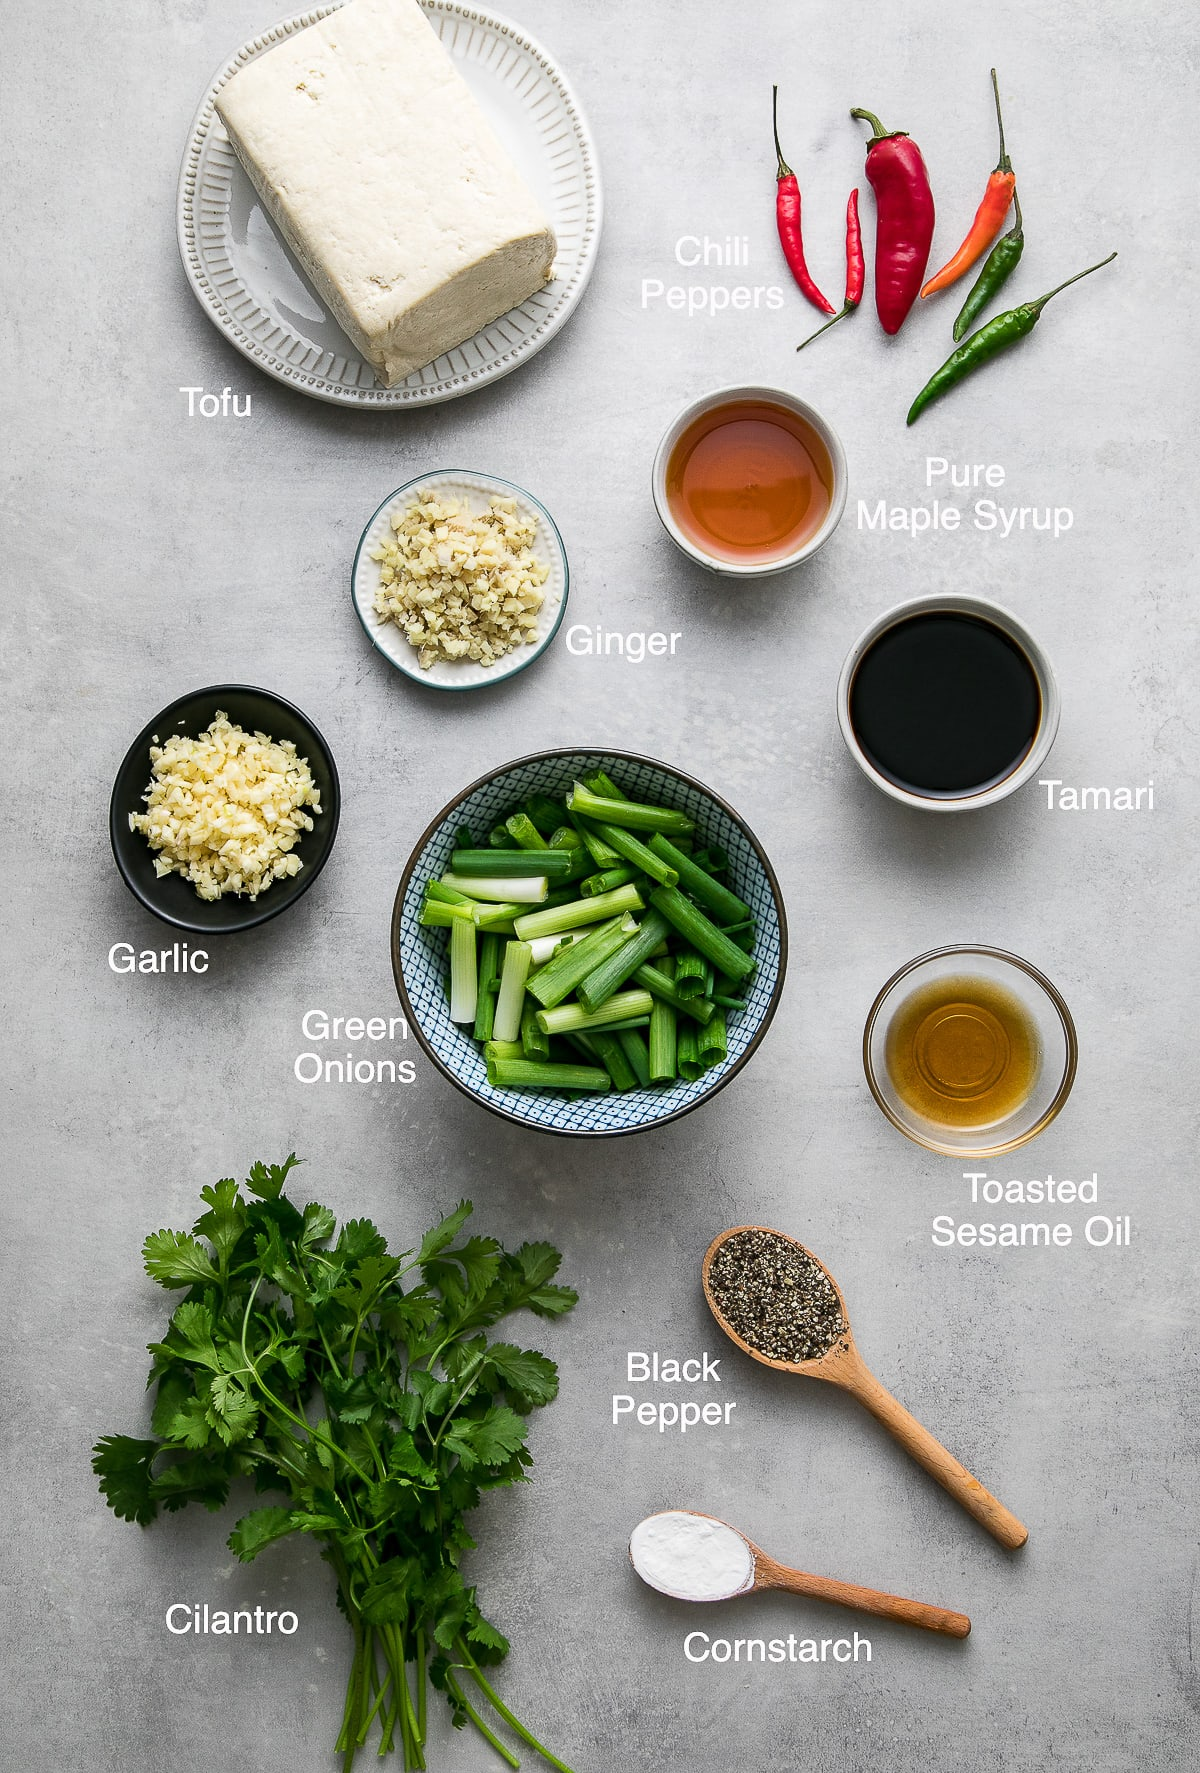 top down view of ingredients used to make black pepper tofu.